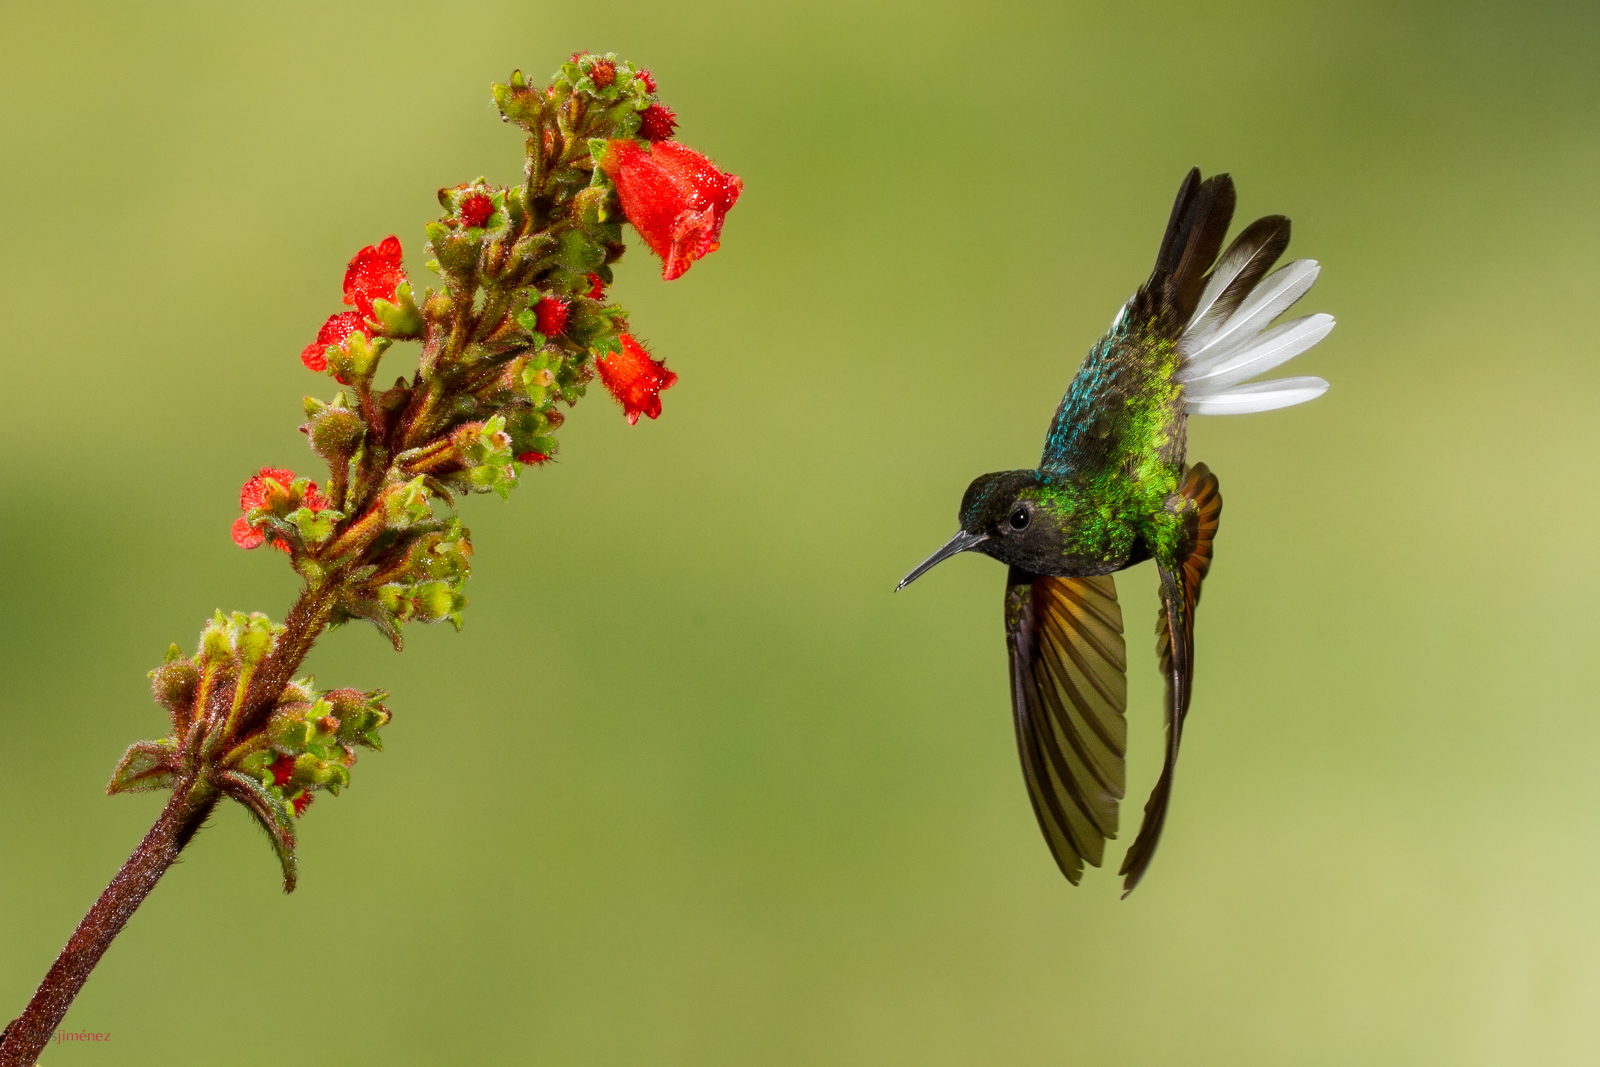 Black-bellied Hummingbird (Eupherusa nigriventis) feeding from Flowers at Cinchona, Costa Rica.